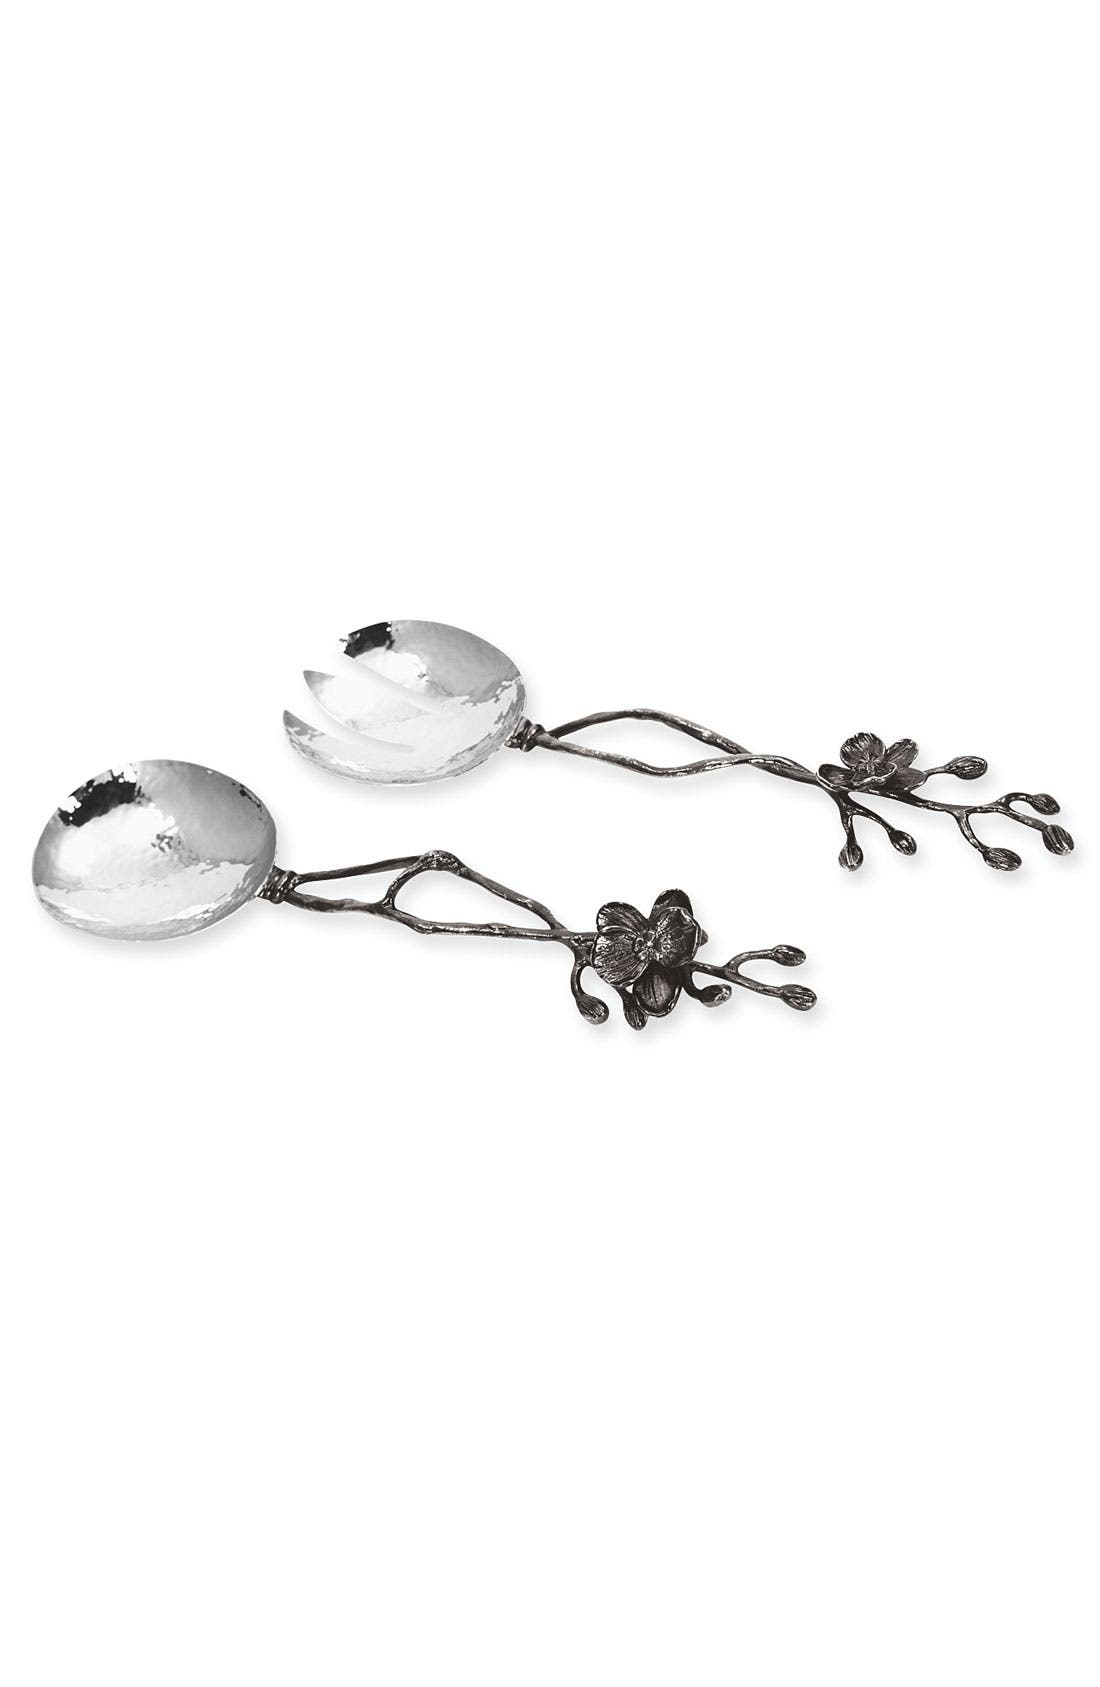 Alternate Image 1 Selected - Michael Aram 'Black Orchid' 2-Piece Salad Serving Set